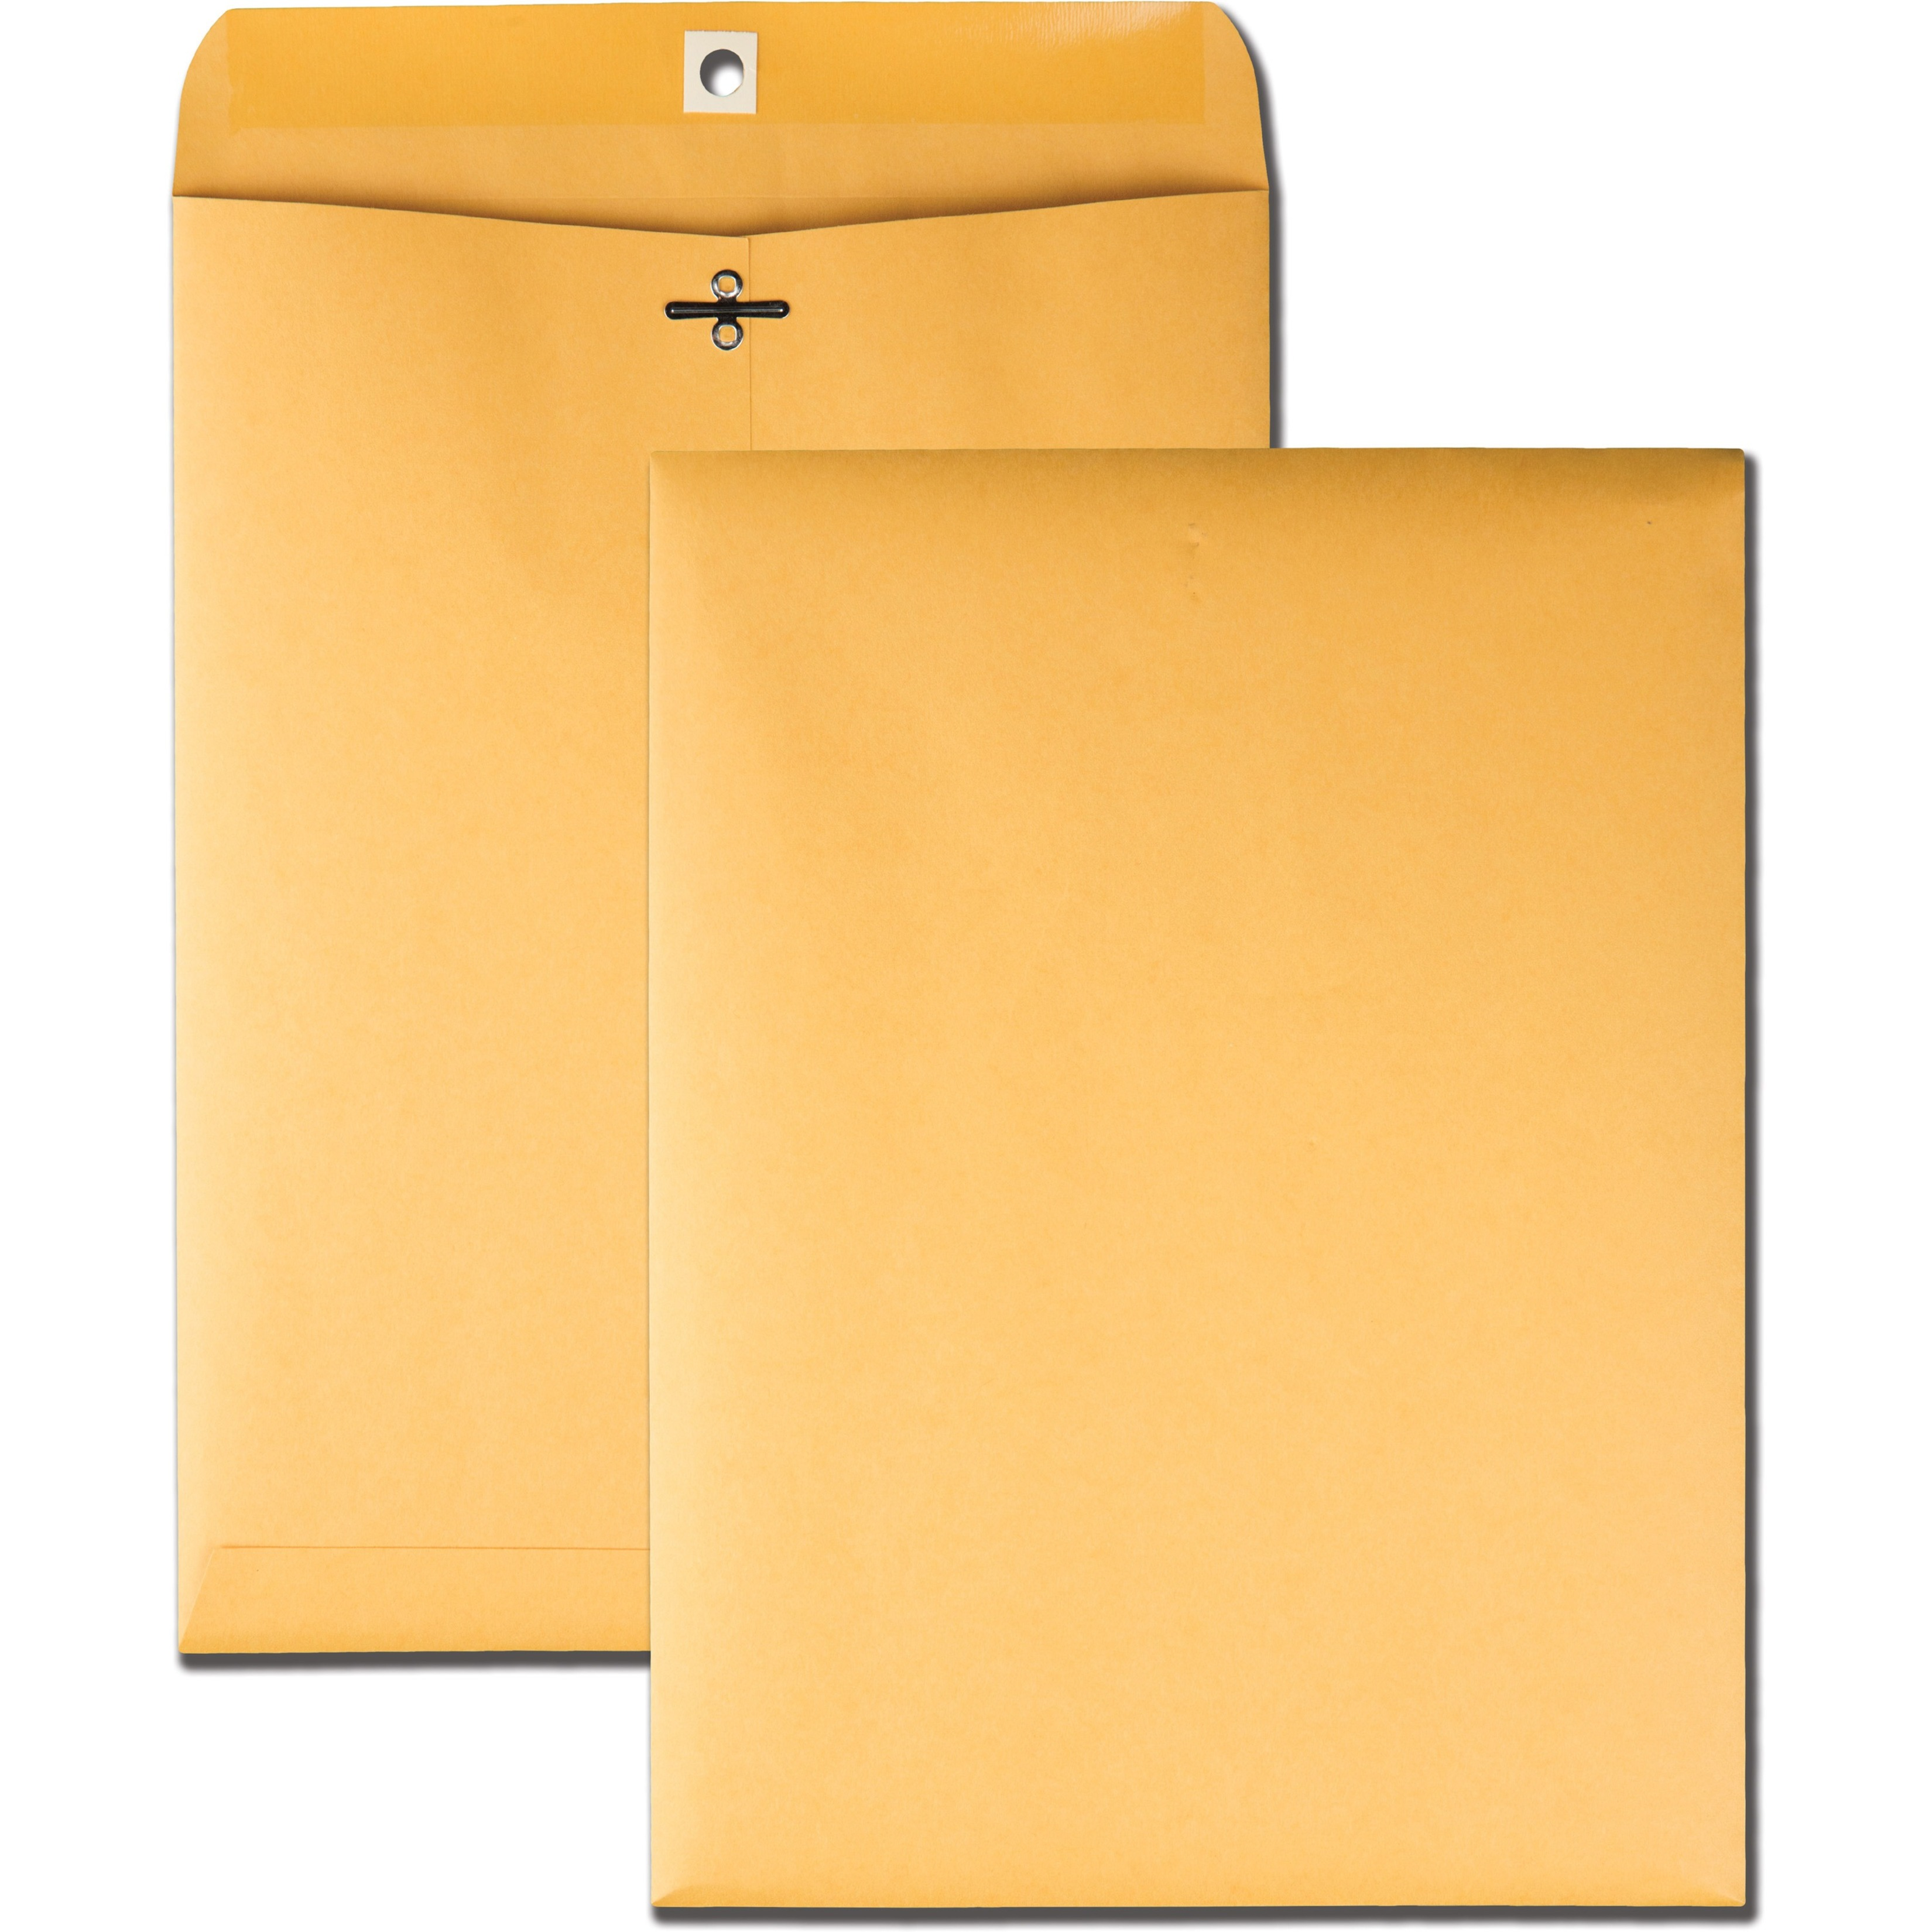 Clasp Envelope, 9 x 12, 32lb, Brown Kraft, 100/Box